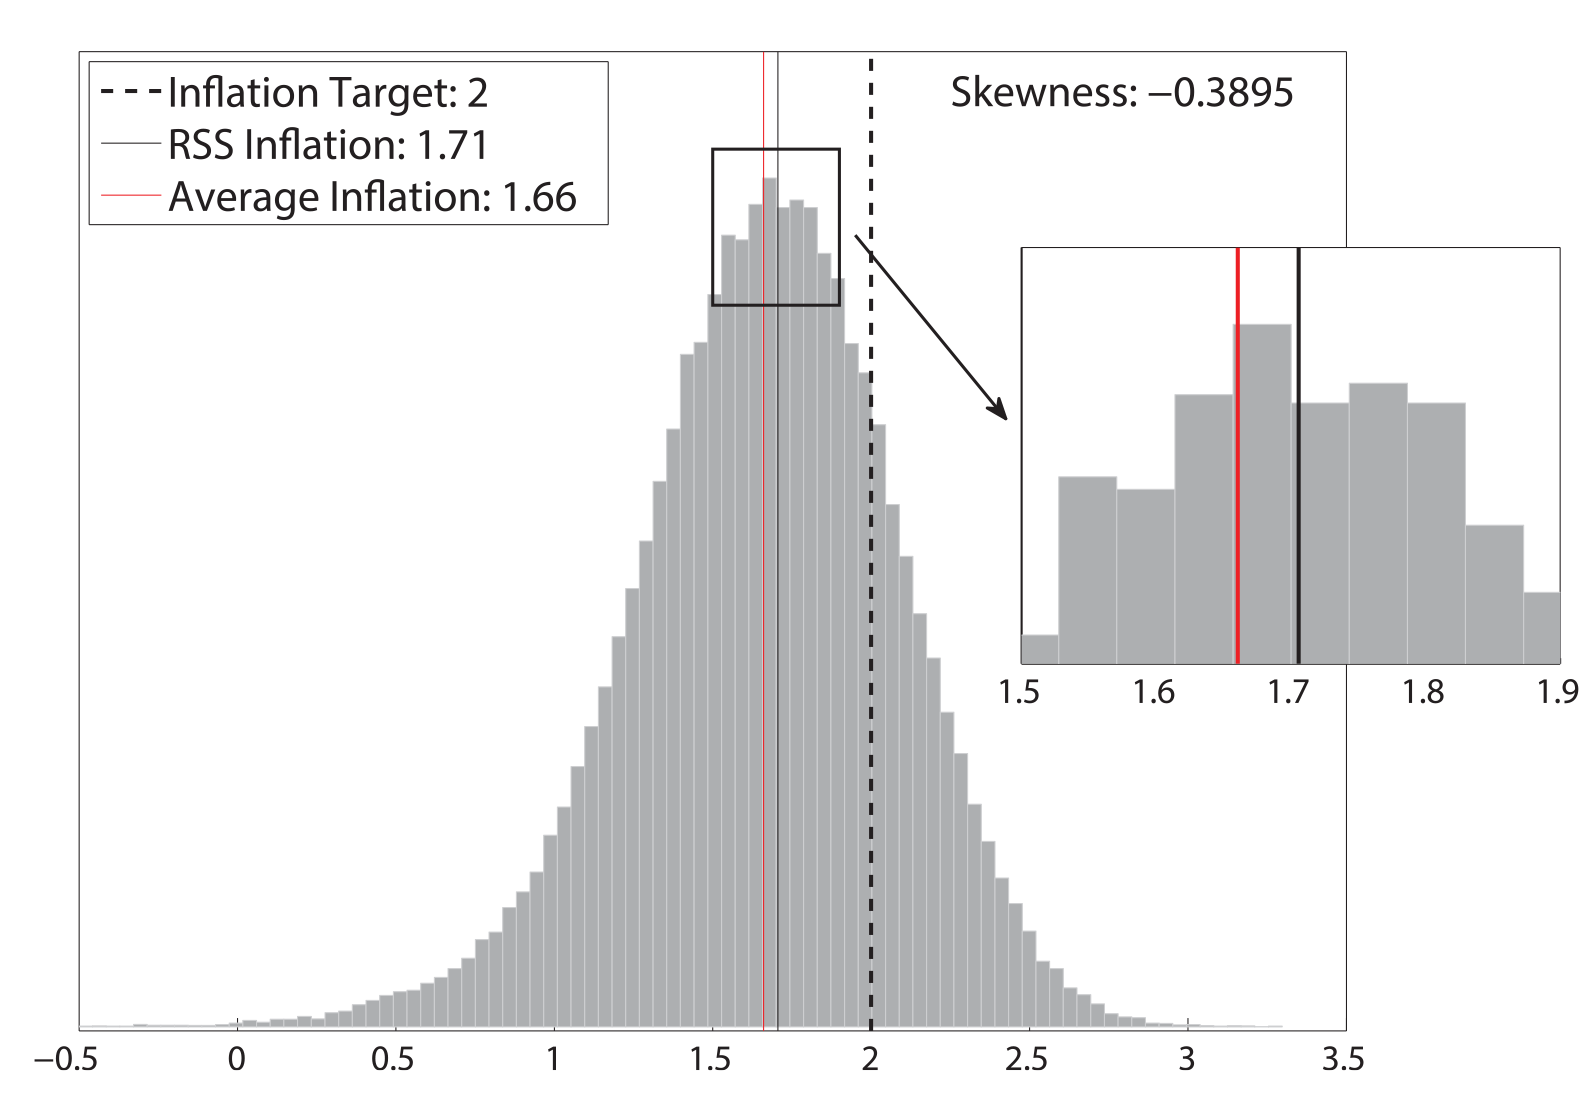 Figure 1: Unconditional Distribution of Inflation. See accessible link for data.